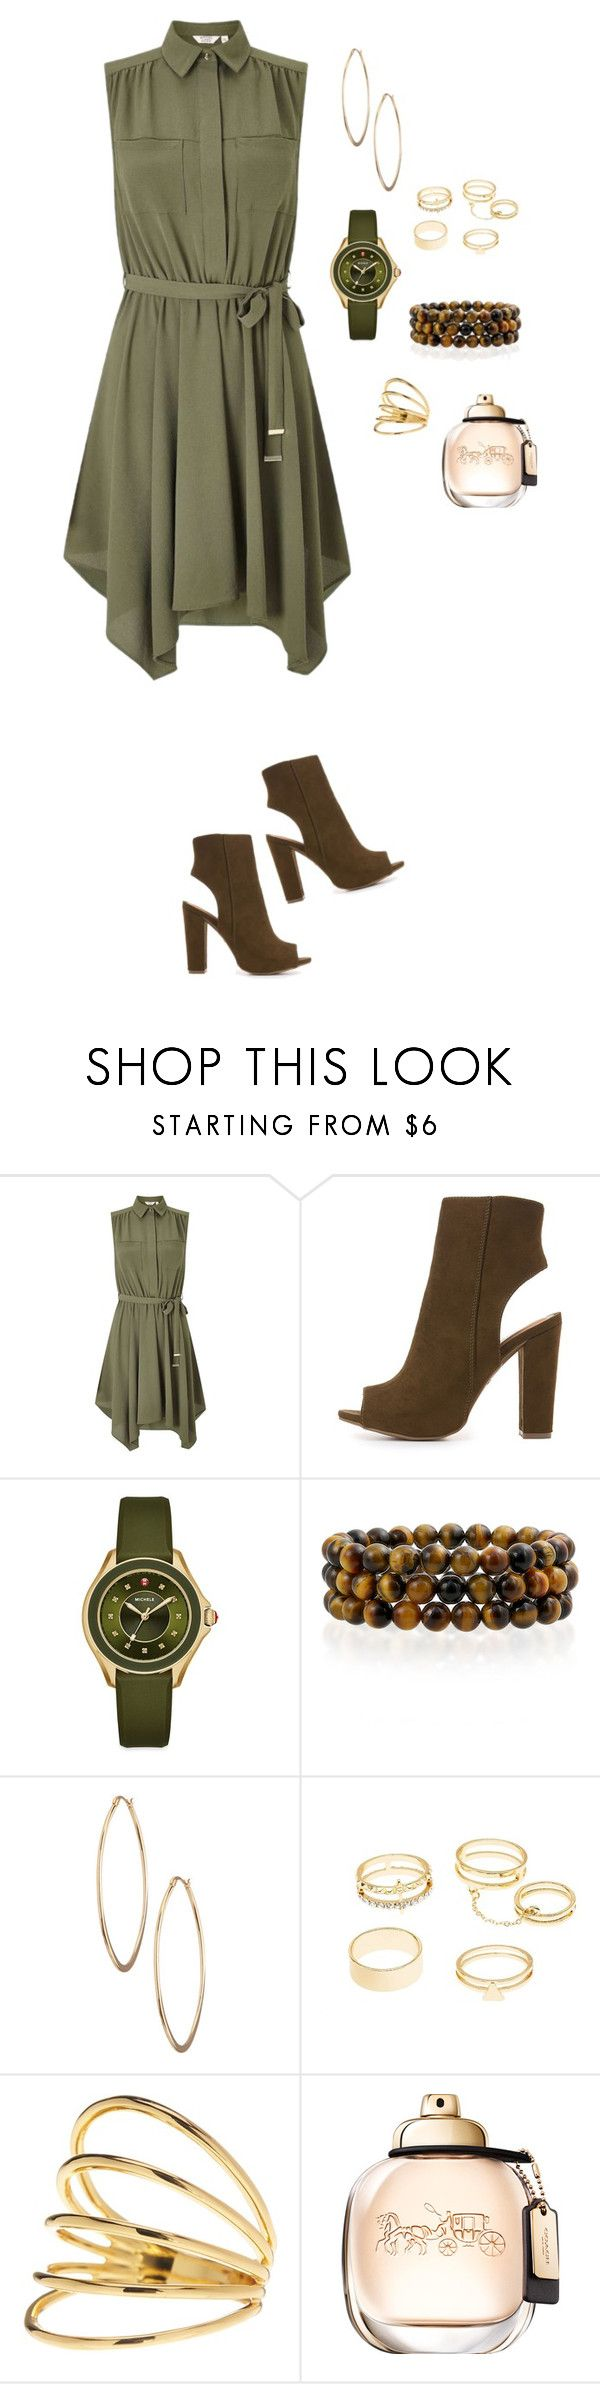 """""""Olive Tree"""" by lalalace-1 ❤ liked on Polyvore featuring Miss Selfridge, Bamboo, Michele, Bling Jewelry, Lydell NYC, Charlotte Russe and Gorjana"""